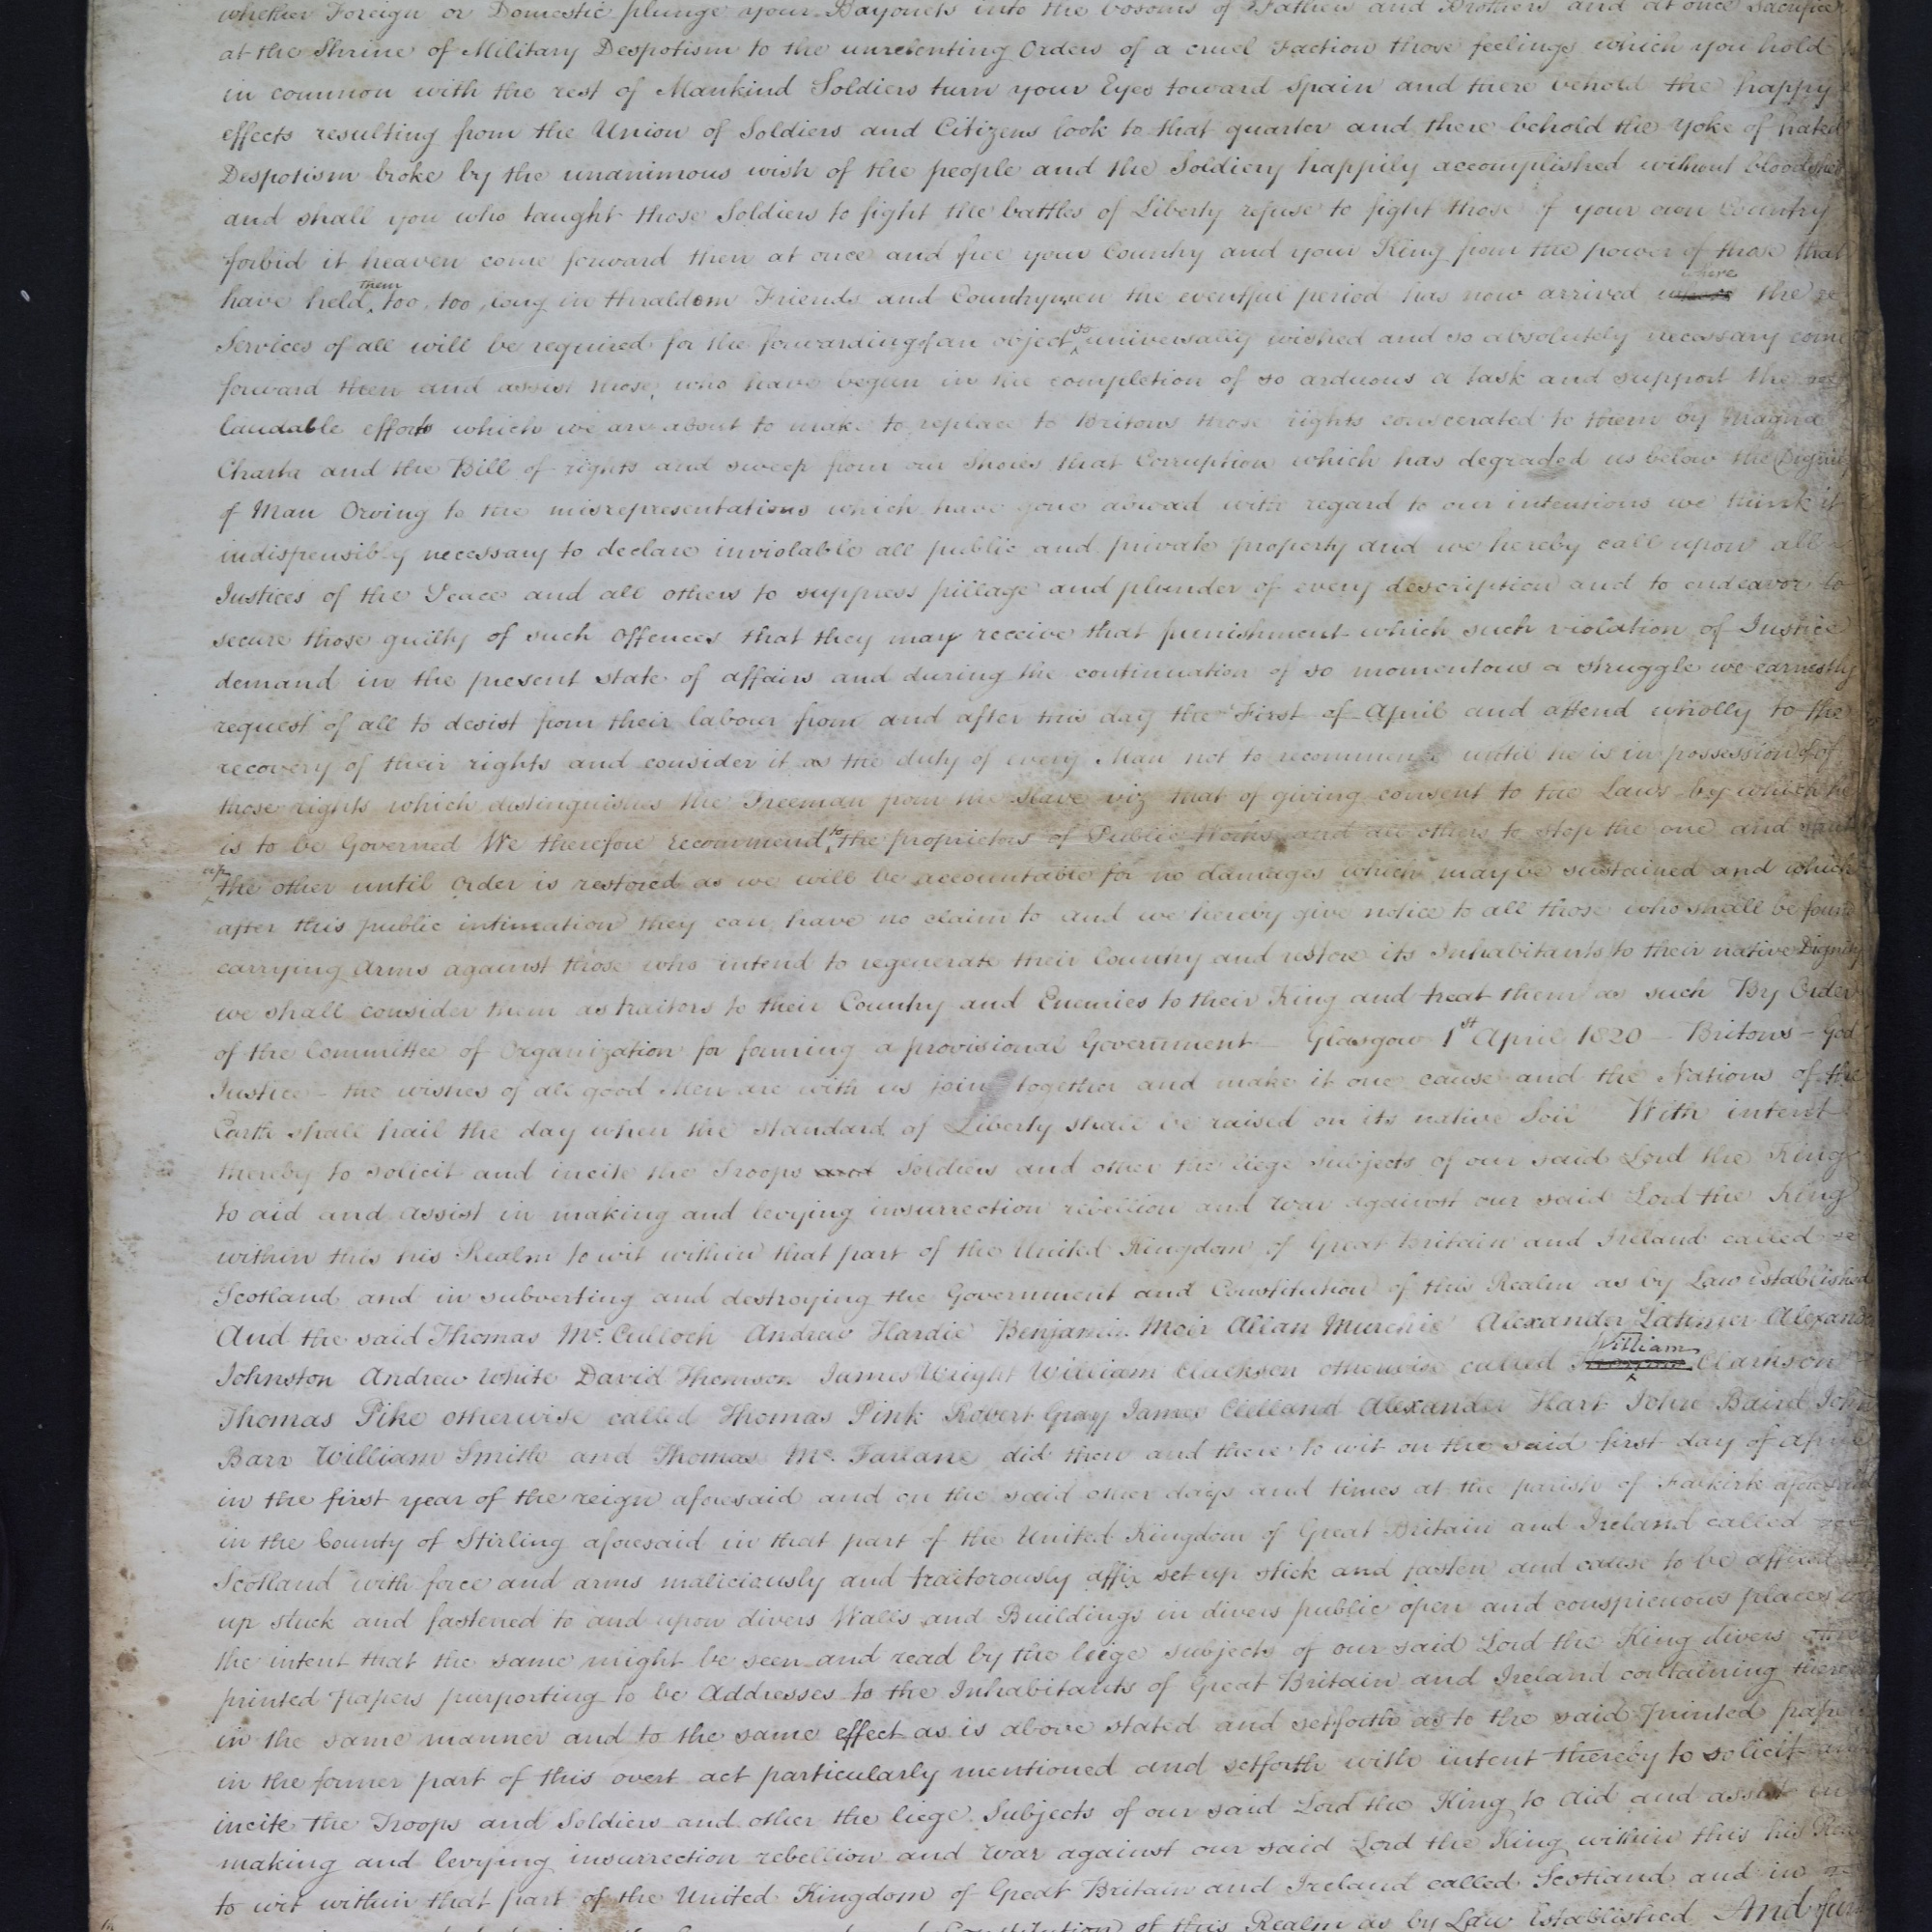 Treason trials for the County of Stirling, the Bonnymuir case. True bills brought against 18 men. National Records of Scotland, Crown copyright, JC21/2/1 p2